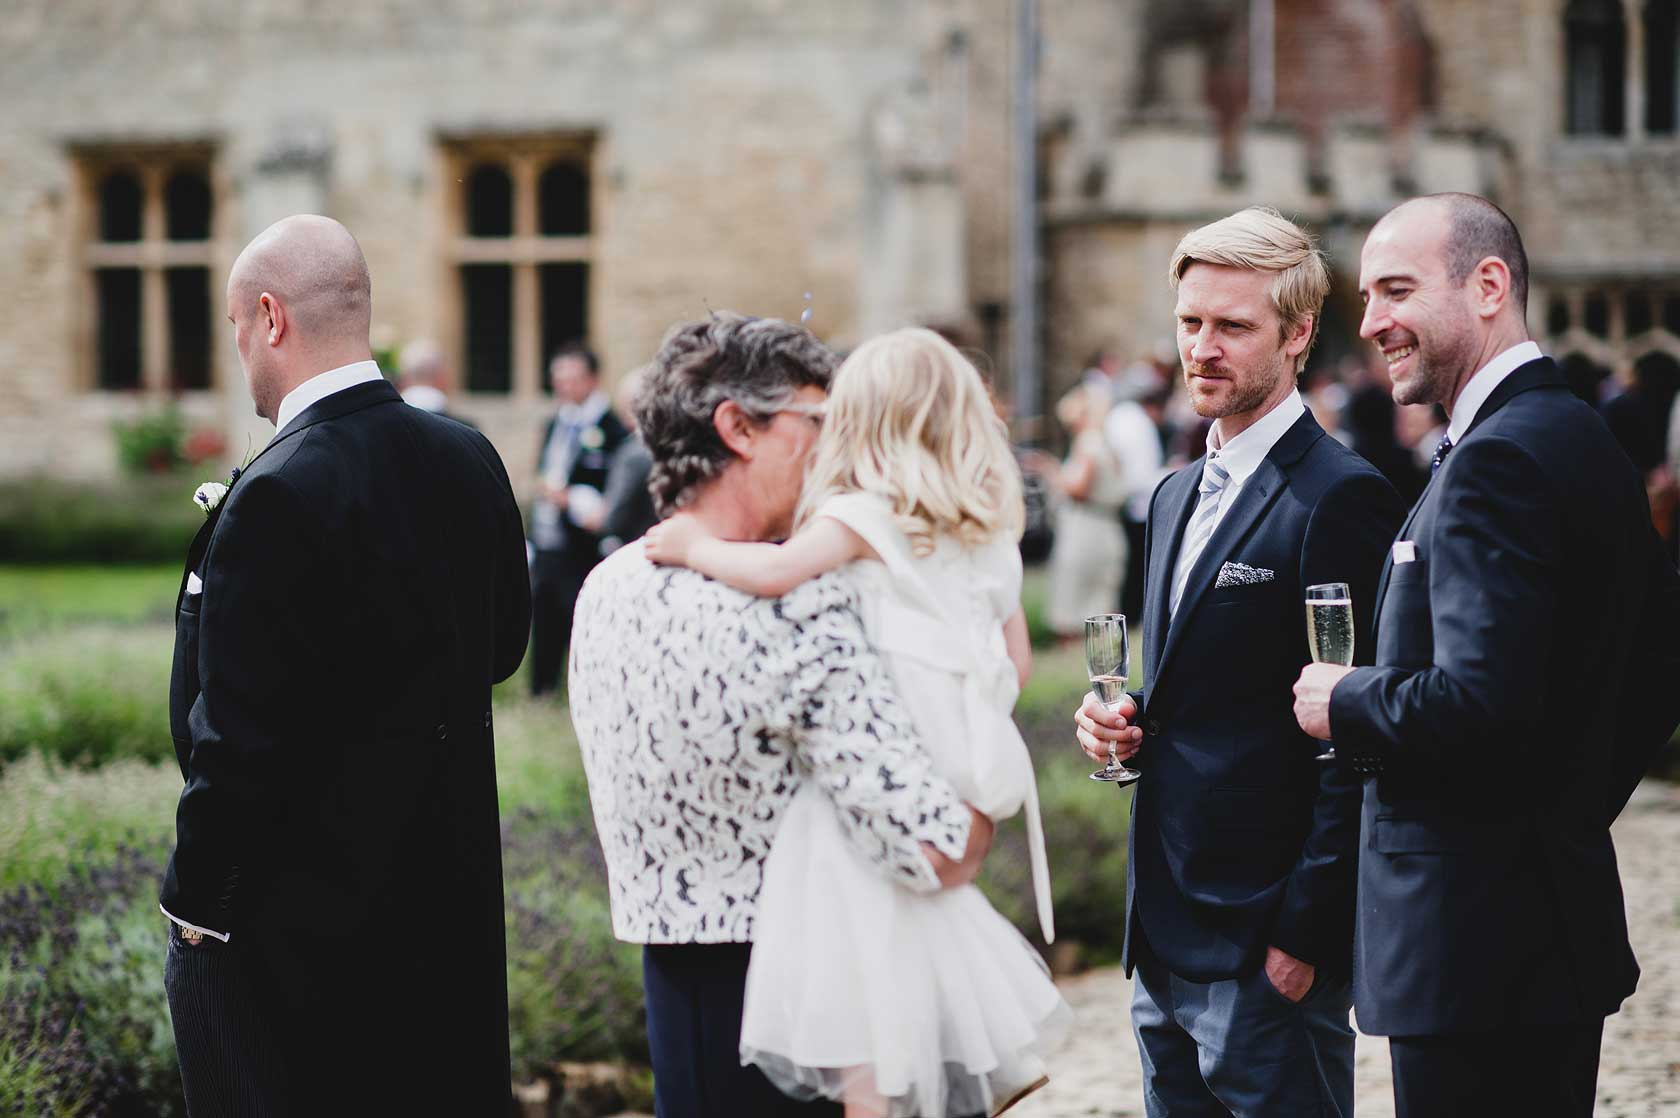 Reportage Wedding Photography at Notley Abbey